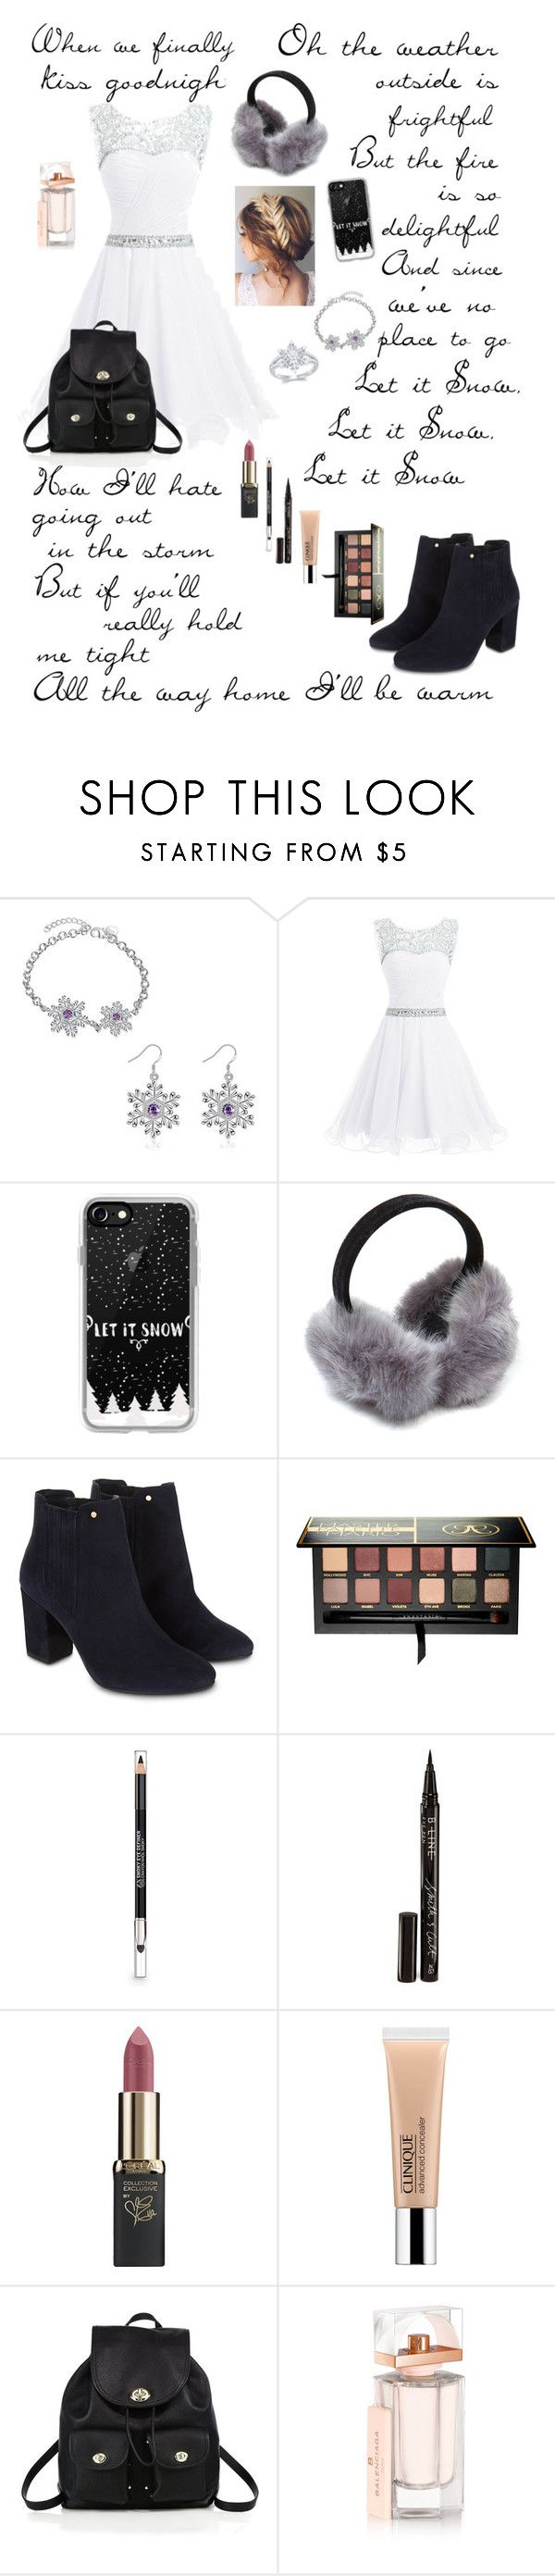 """""""🎄 Let It Snow 🎄 BONUS SET"""" by enchantingfashions ❤ liked on Polyvore featuring Casetify, Monsoon, Anastasia Beverly Hills, The Body Shop, Smith & Cult, L'Oréal Paris, Clinique, Coach, Balenciaga and 12daysofchristmas"""